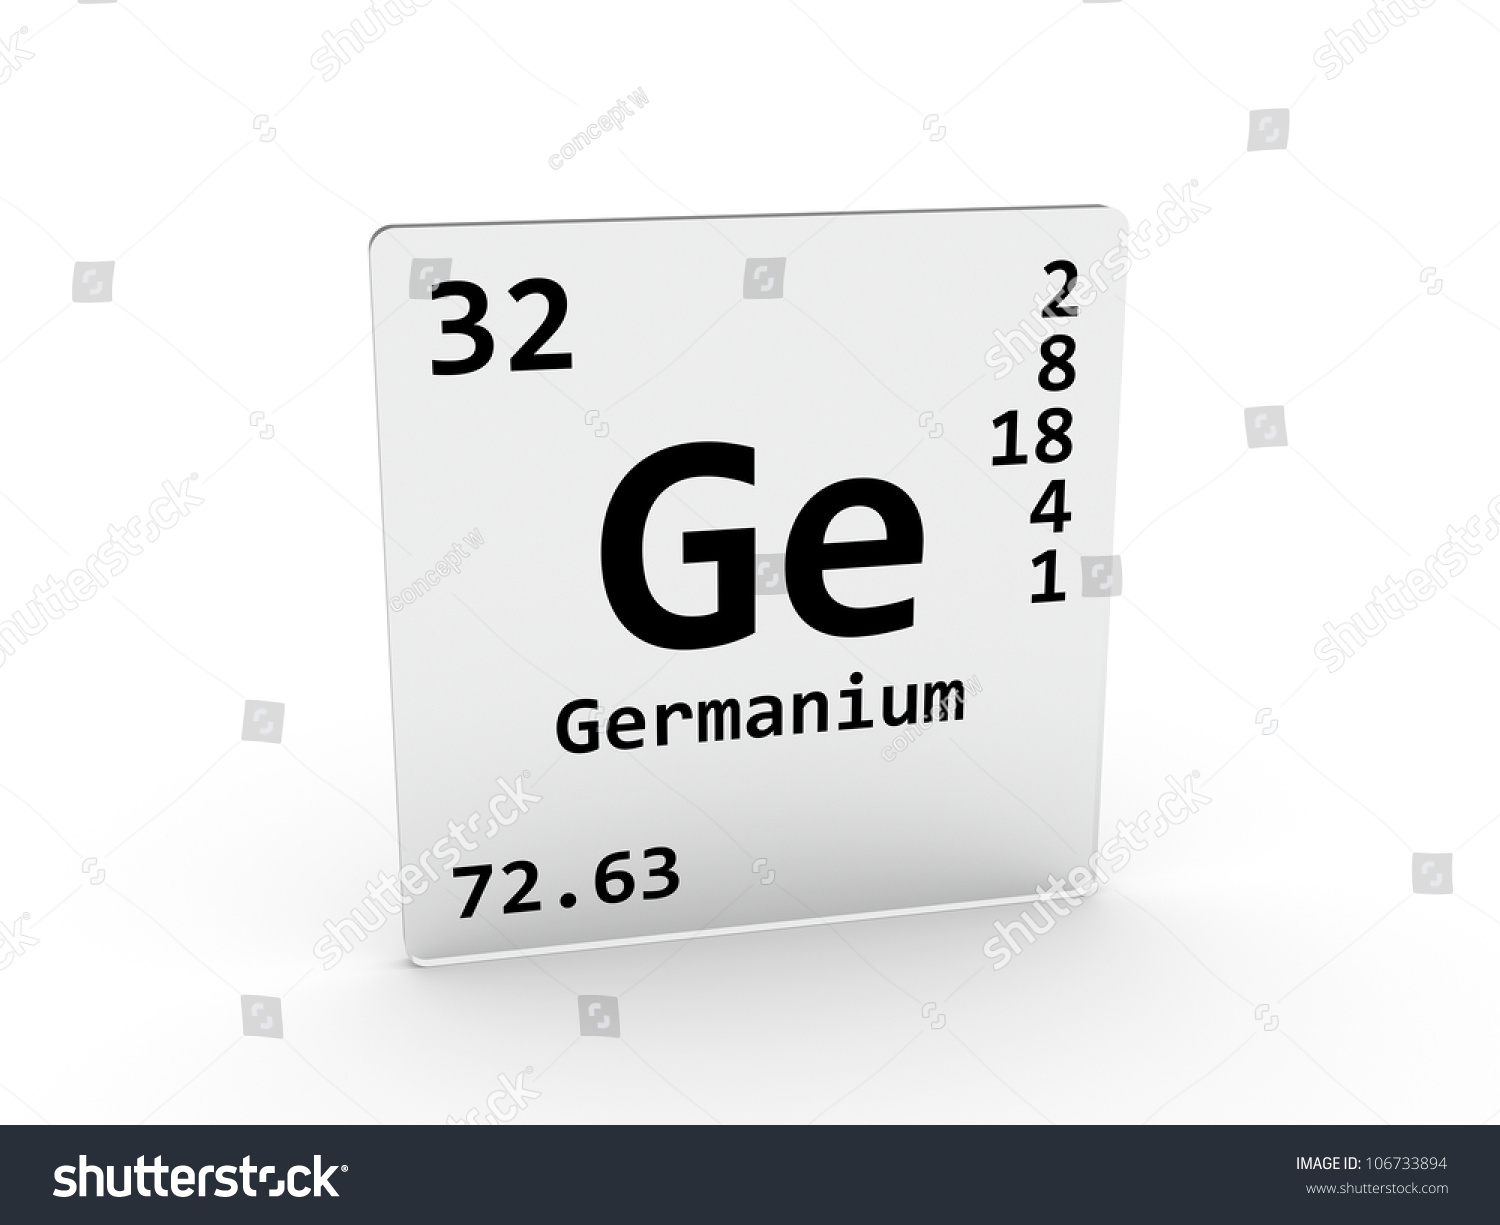 Germanium symbol ge element periodic table stock illustration germanium symbol ge element of the periodic table gamestrikefo Image collections